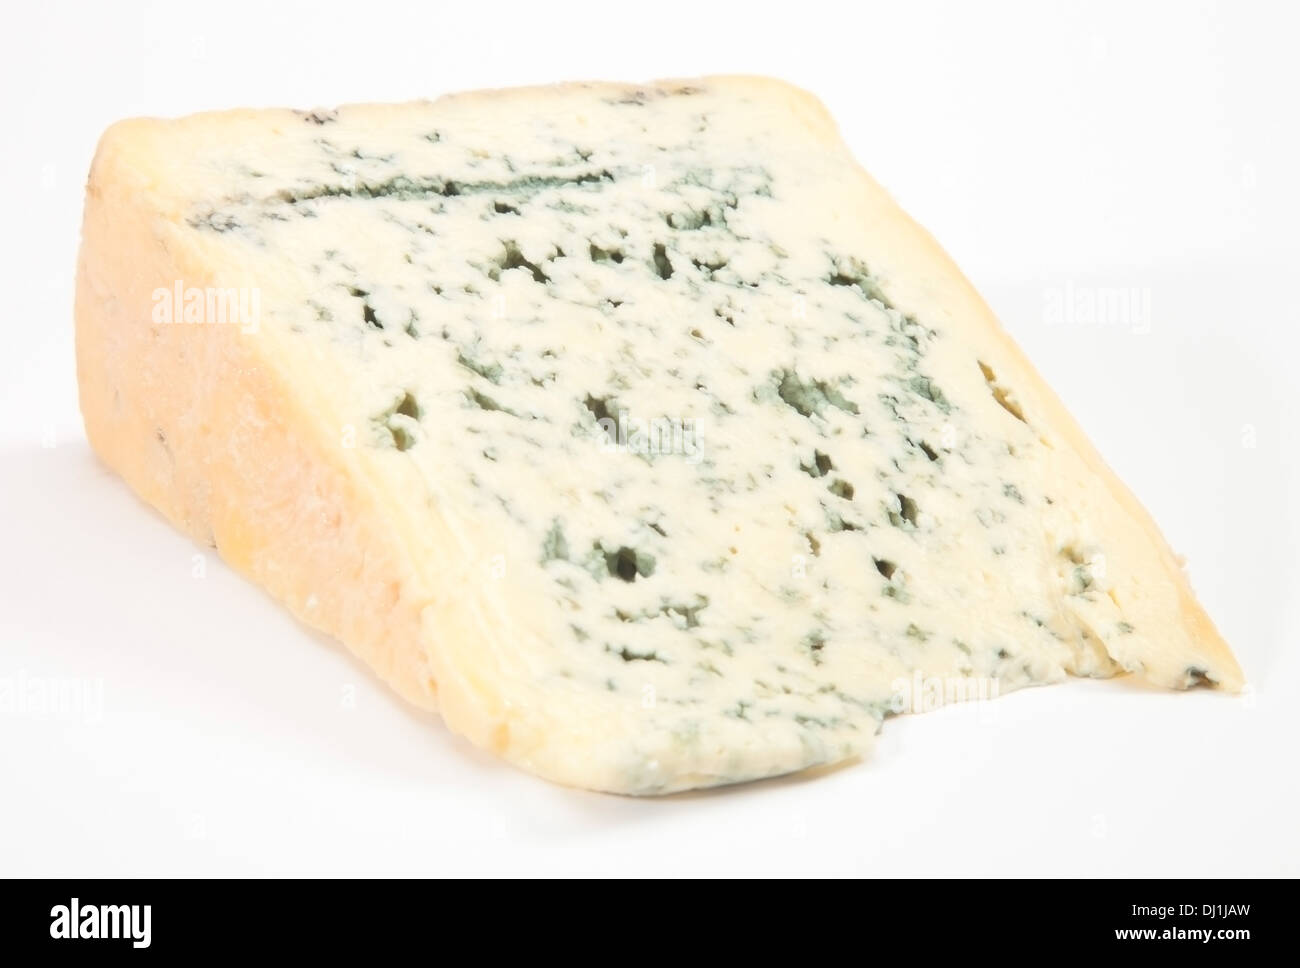 Wedge of full fat soft blue cheese - Stock Image